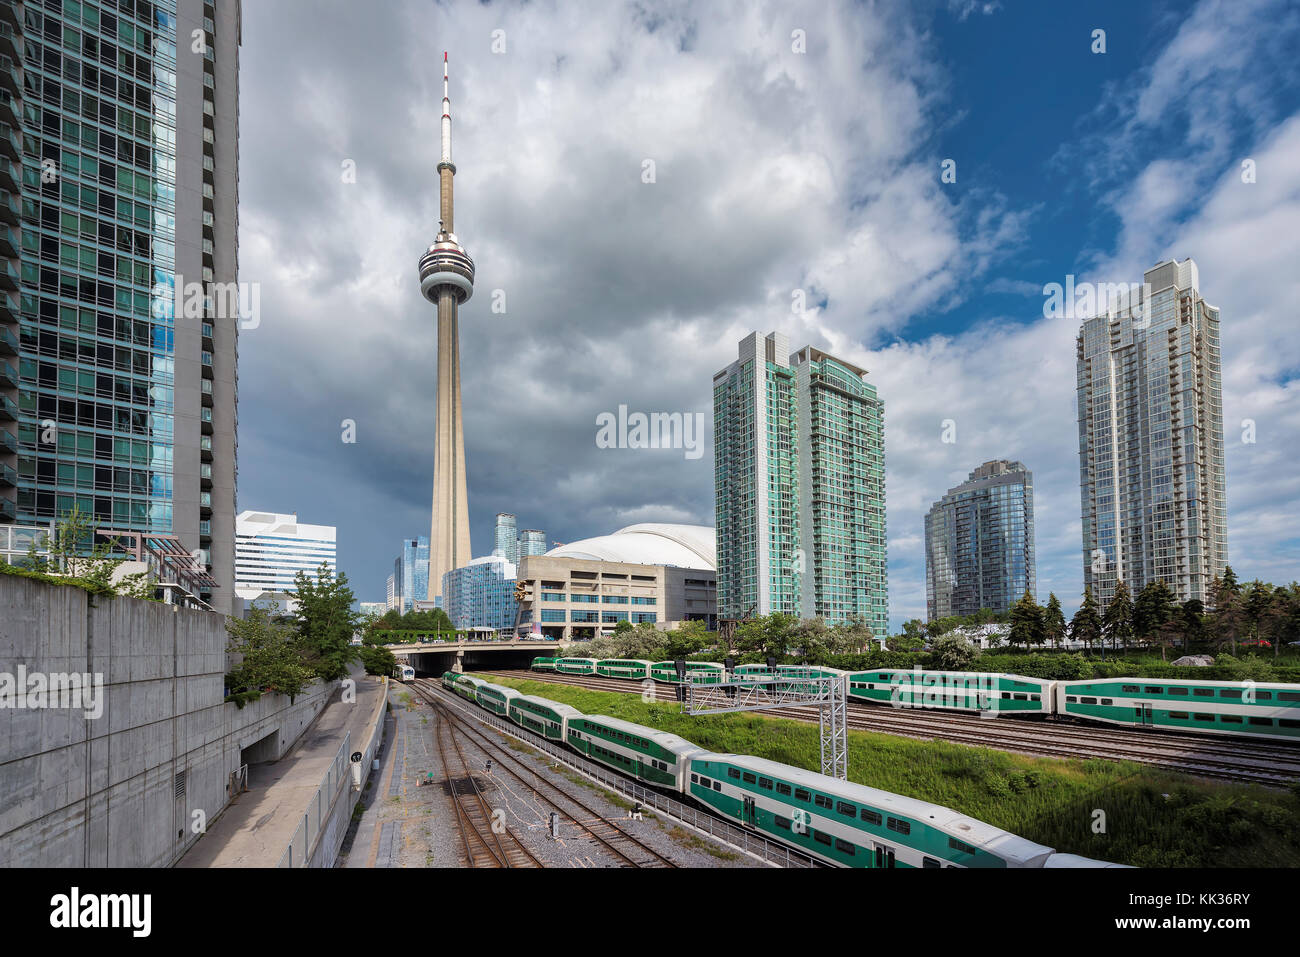 Toronto Skyline with the CN Tower Stock Photo